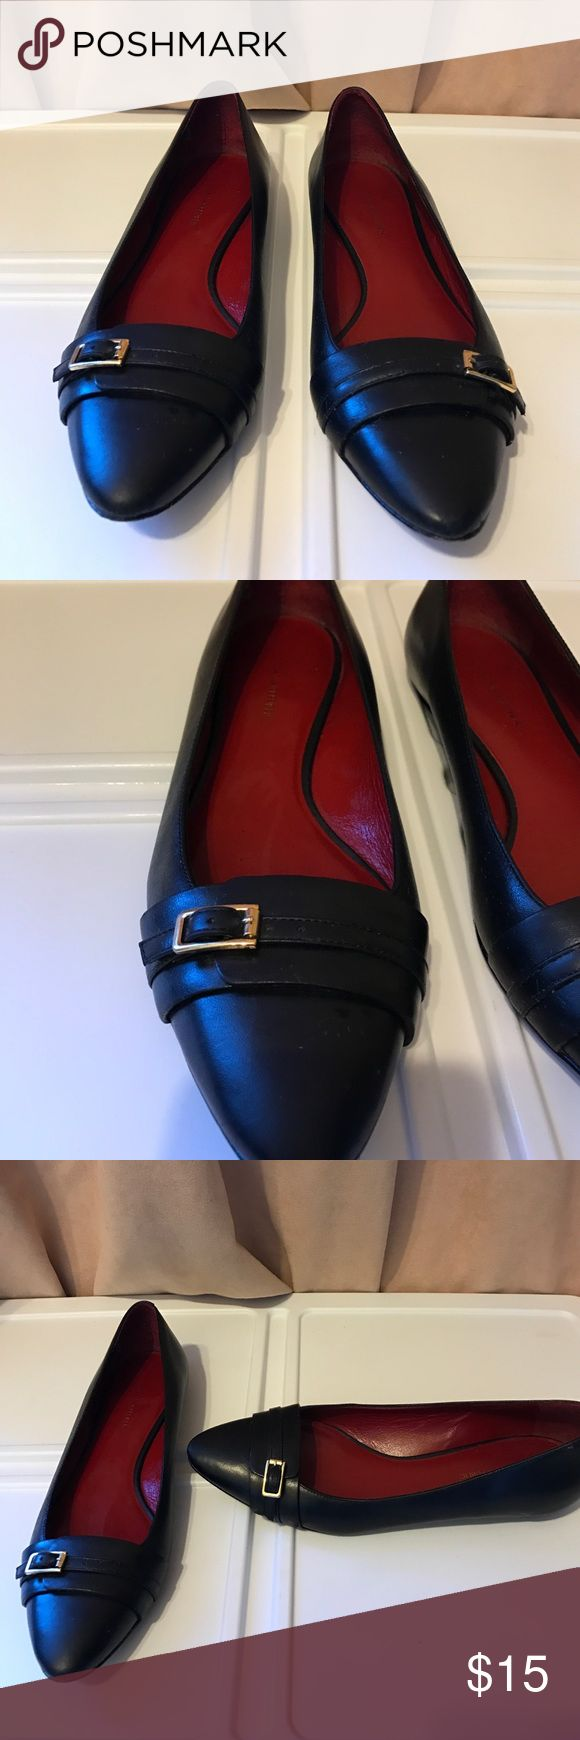 Black leather flats Banana Republic black leather flats with red insole.  Italian leather, size 7 Banana Republic Shoes Flats & Loafers